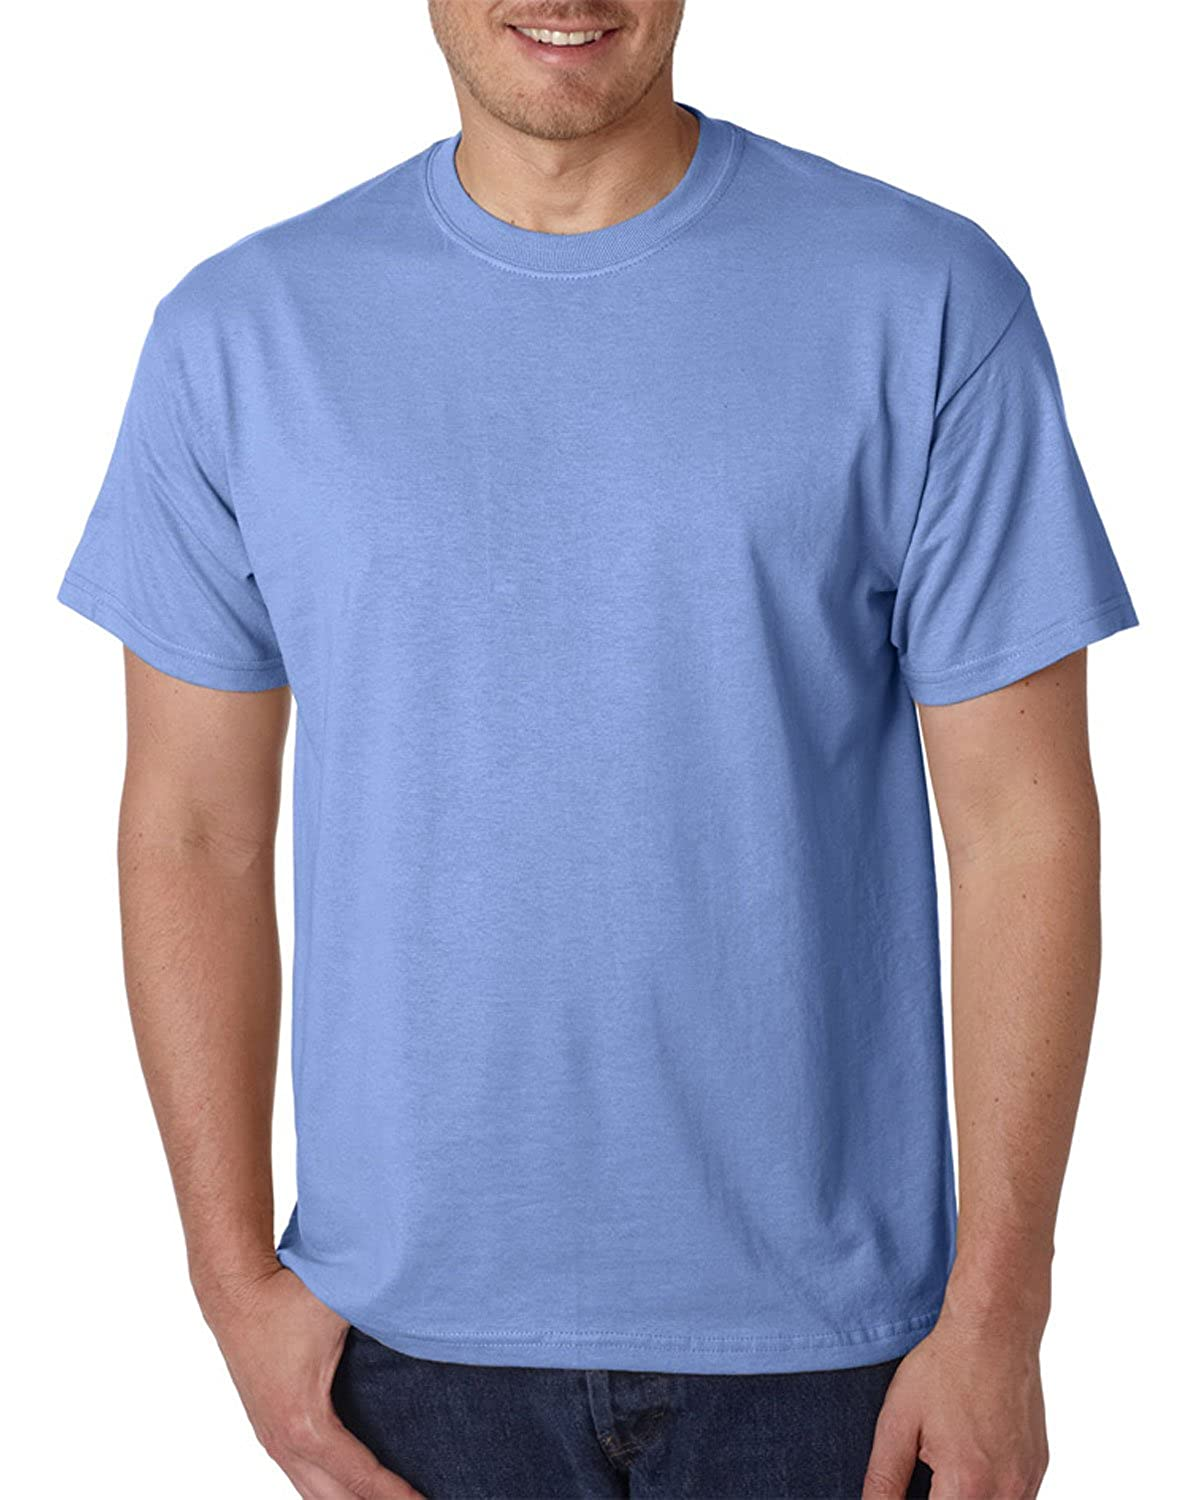 50/50 Ultra Blend Tee Shirt, Color: Carolina Blue, Size: XXXXX-Large